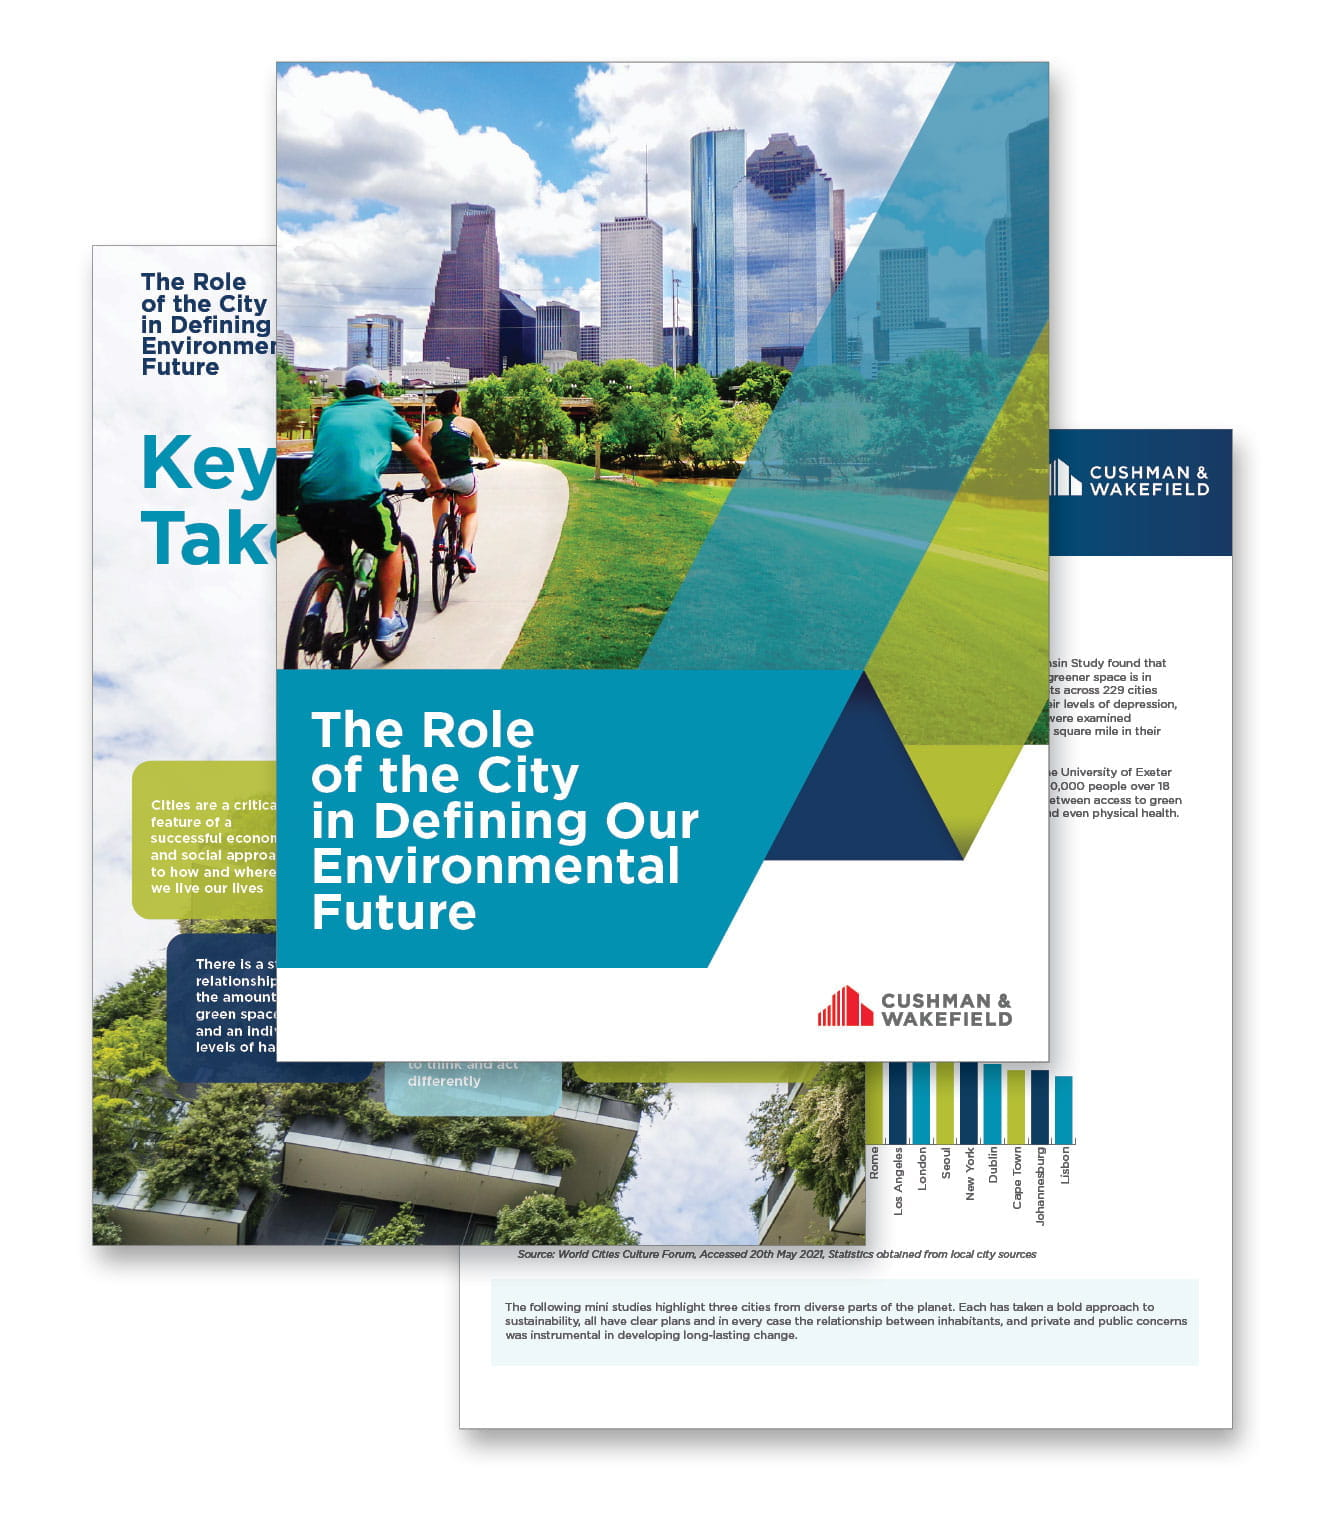 role of the city report (image)